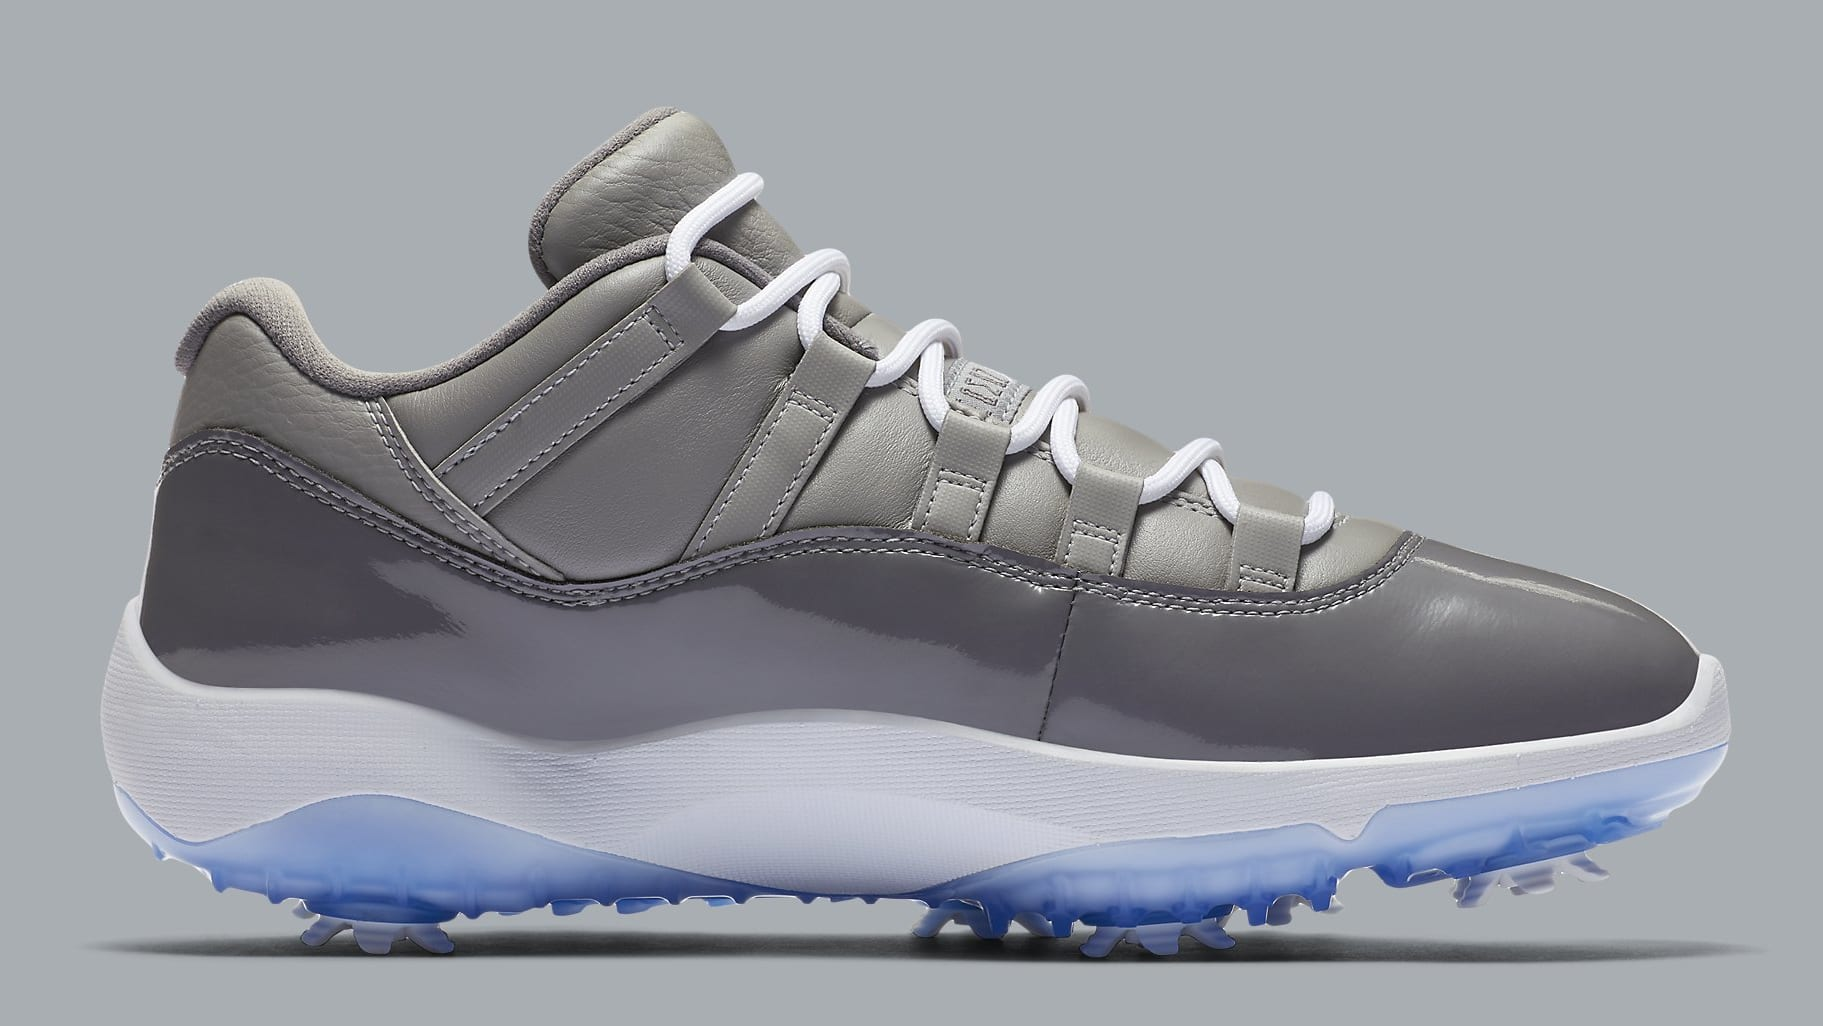 Air Jordan 11 Low Golf Cool Grey Release Date AQ0963-002 Medial